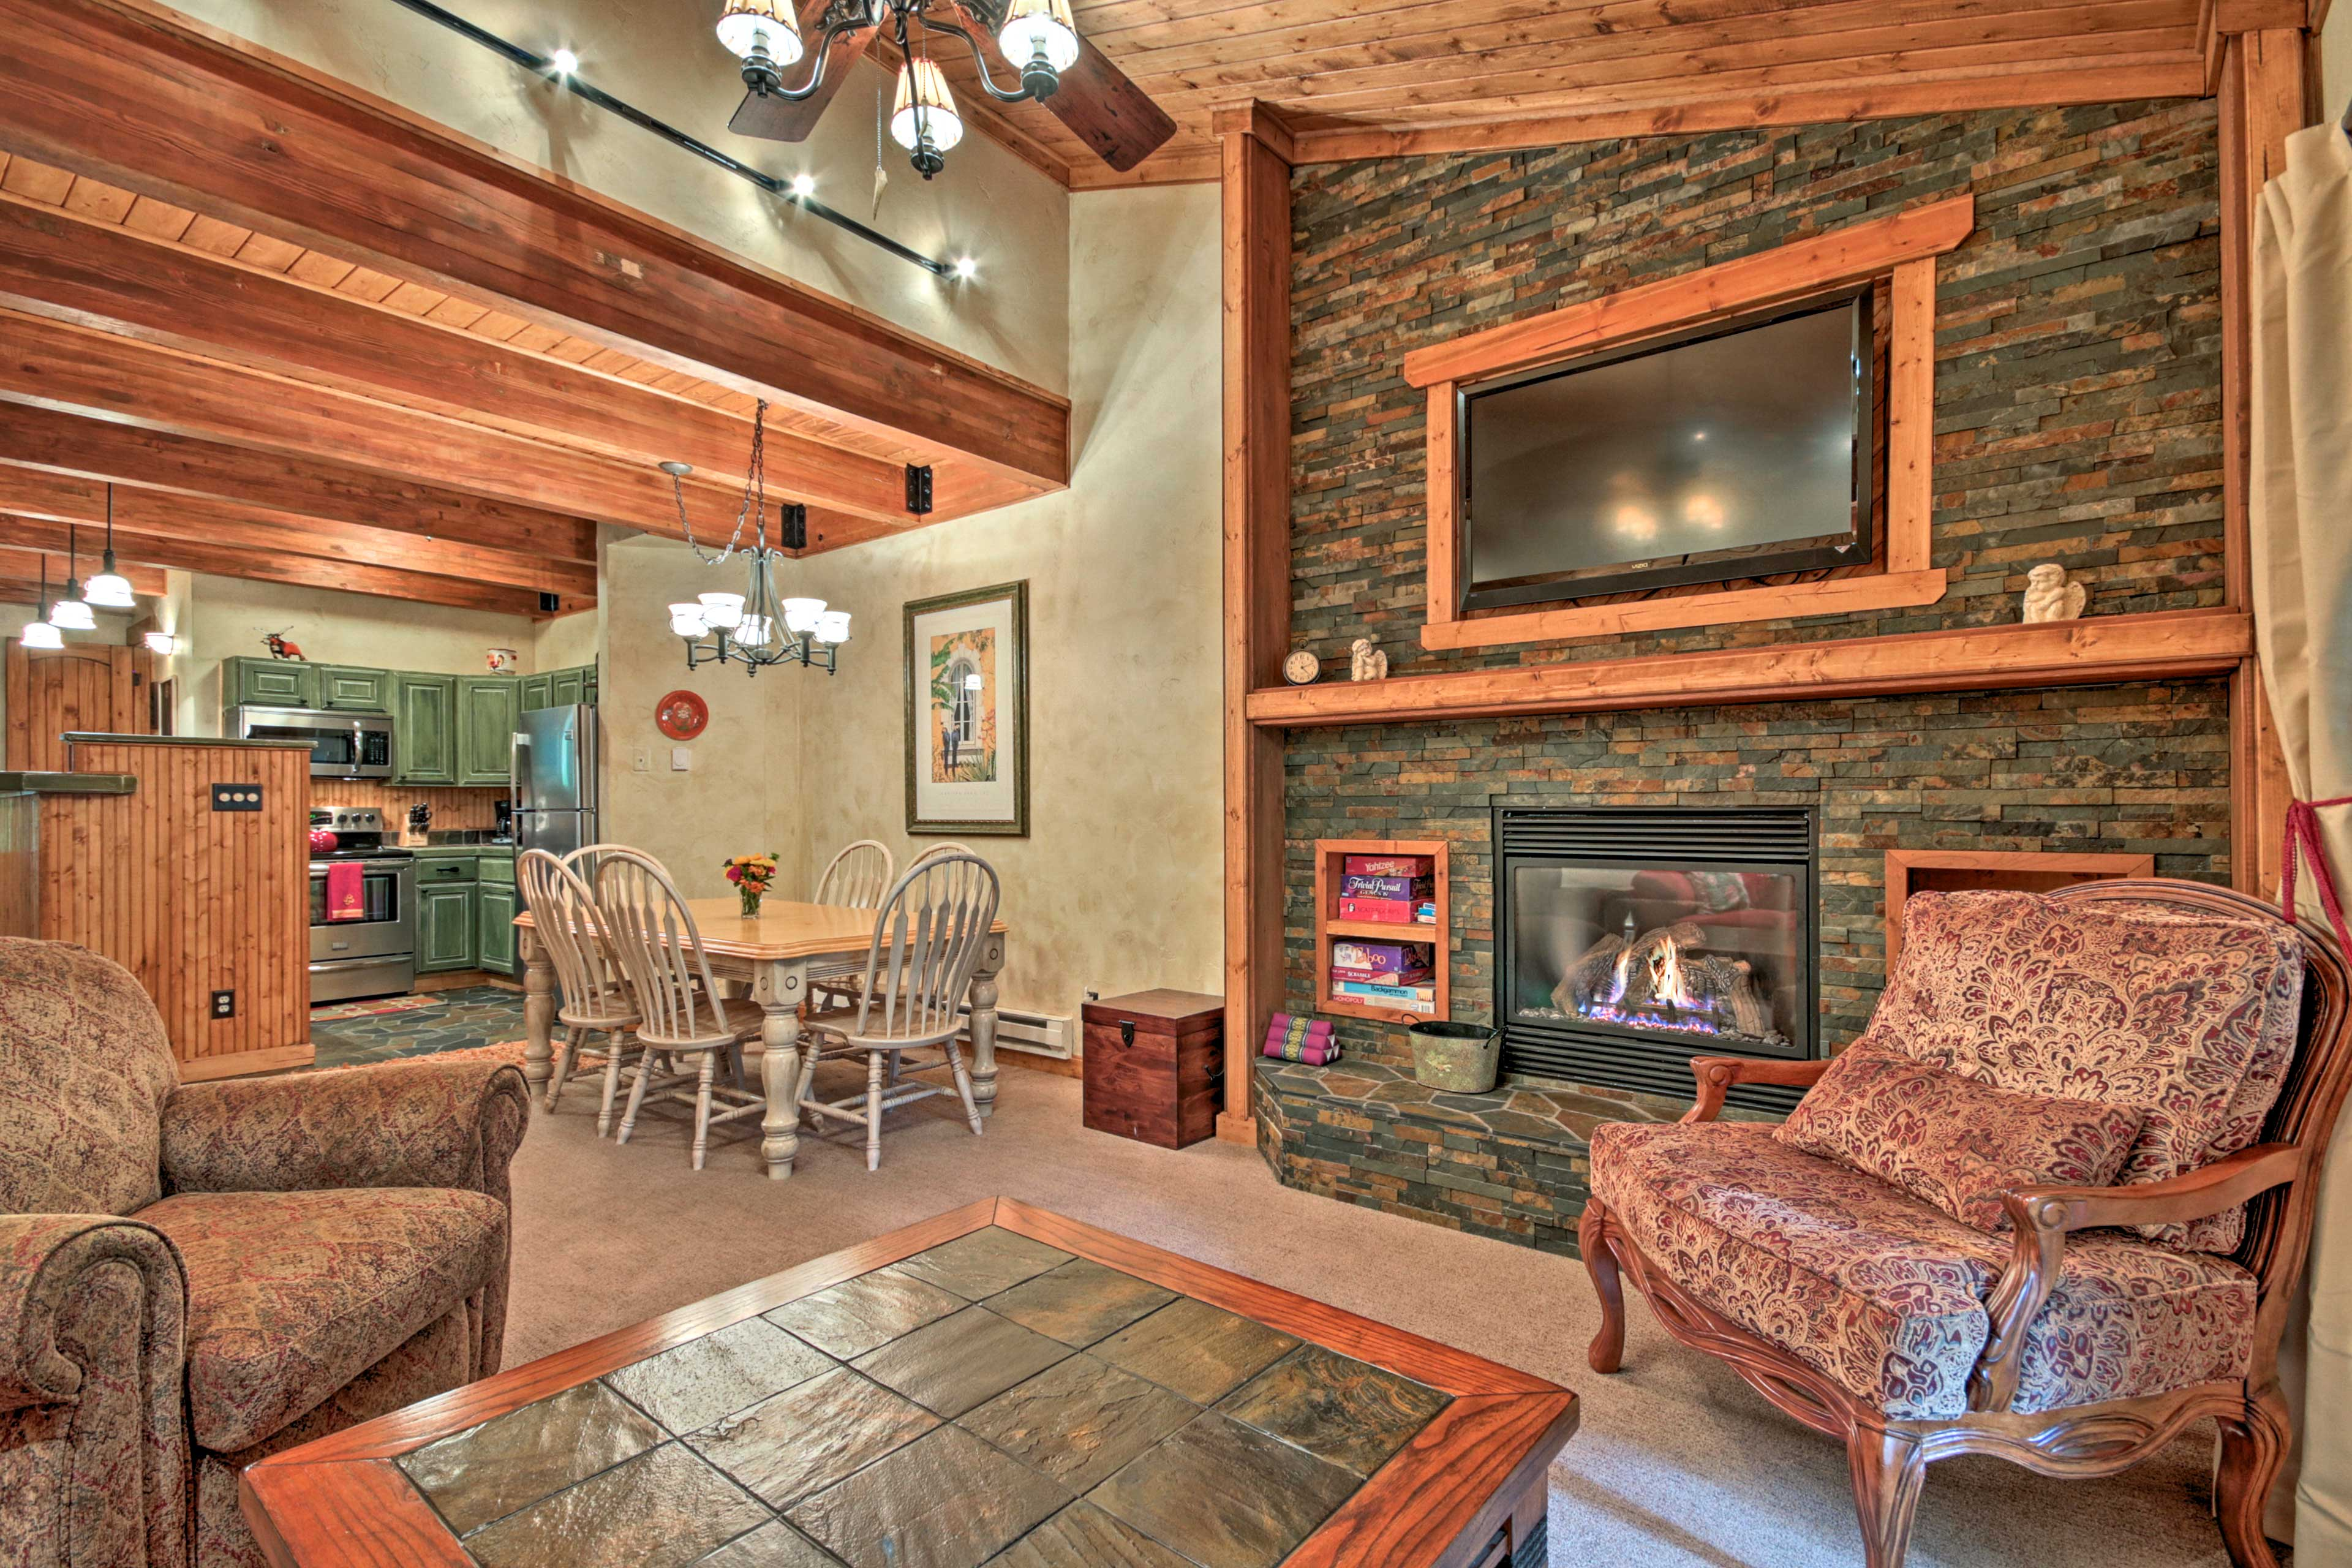 Steamboat Springs Vacation Rental Home | 2BR | 3BA | 3 Stories | 1,200 Sq Ft